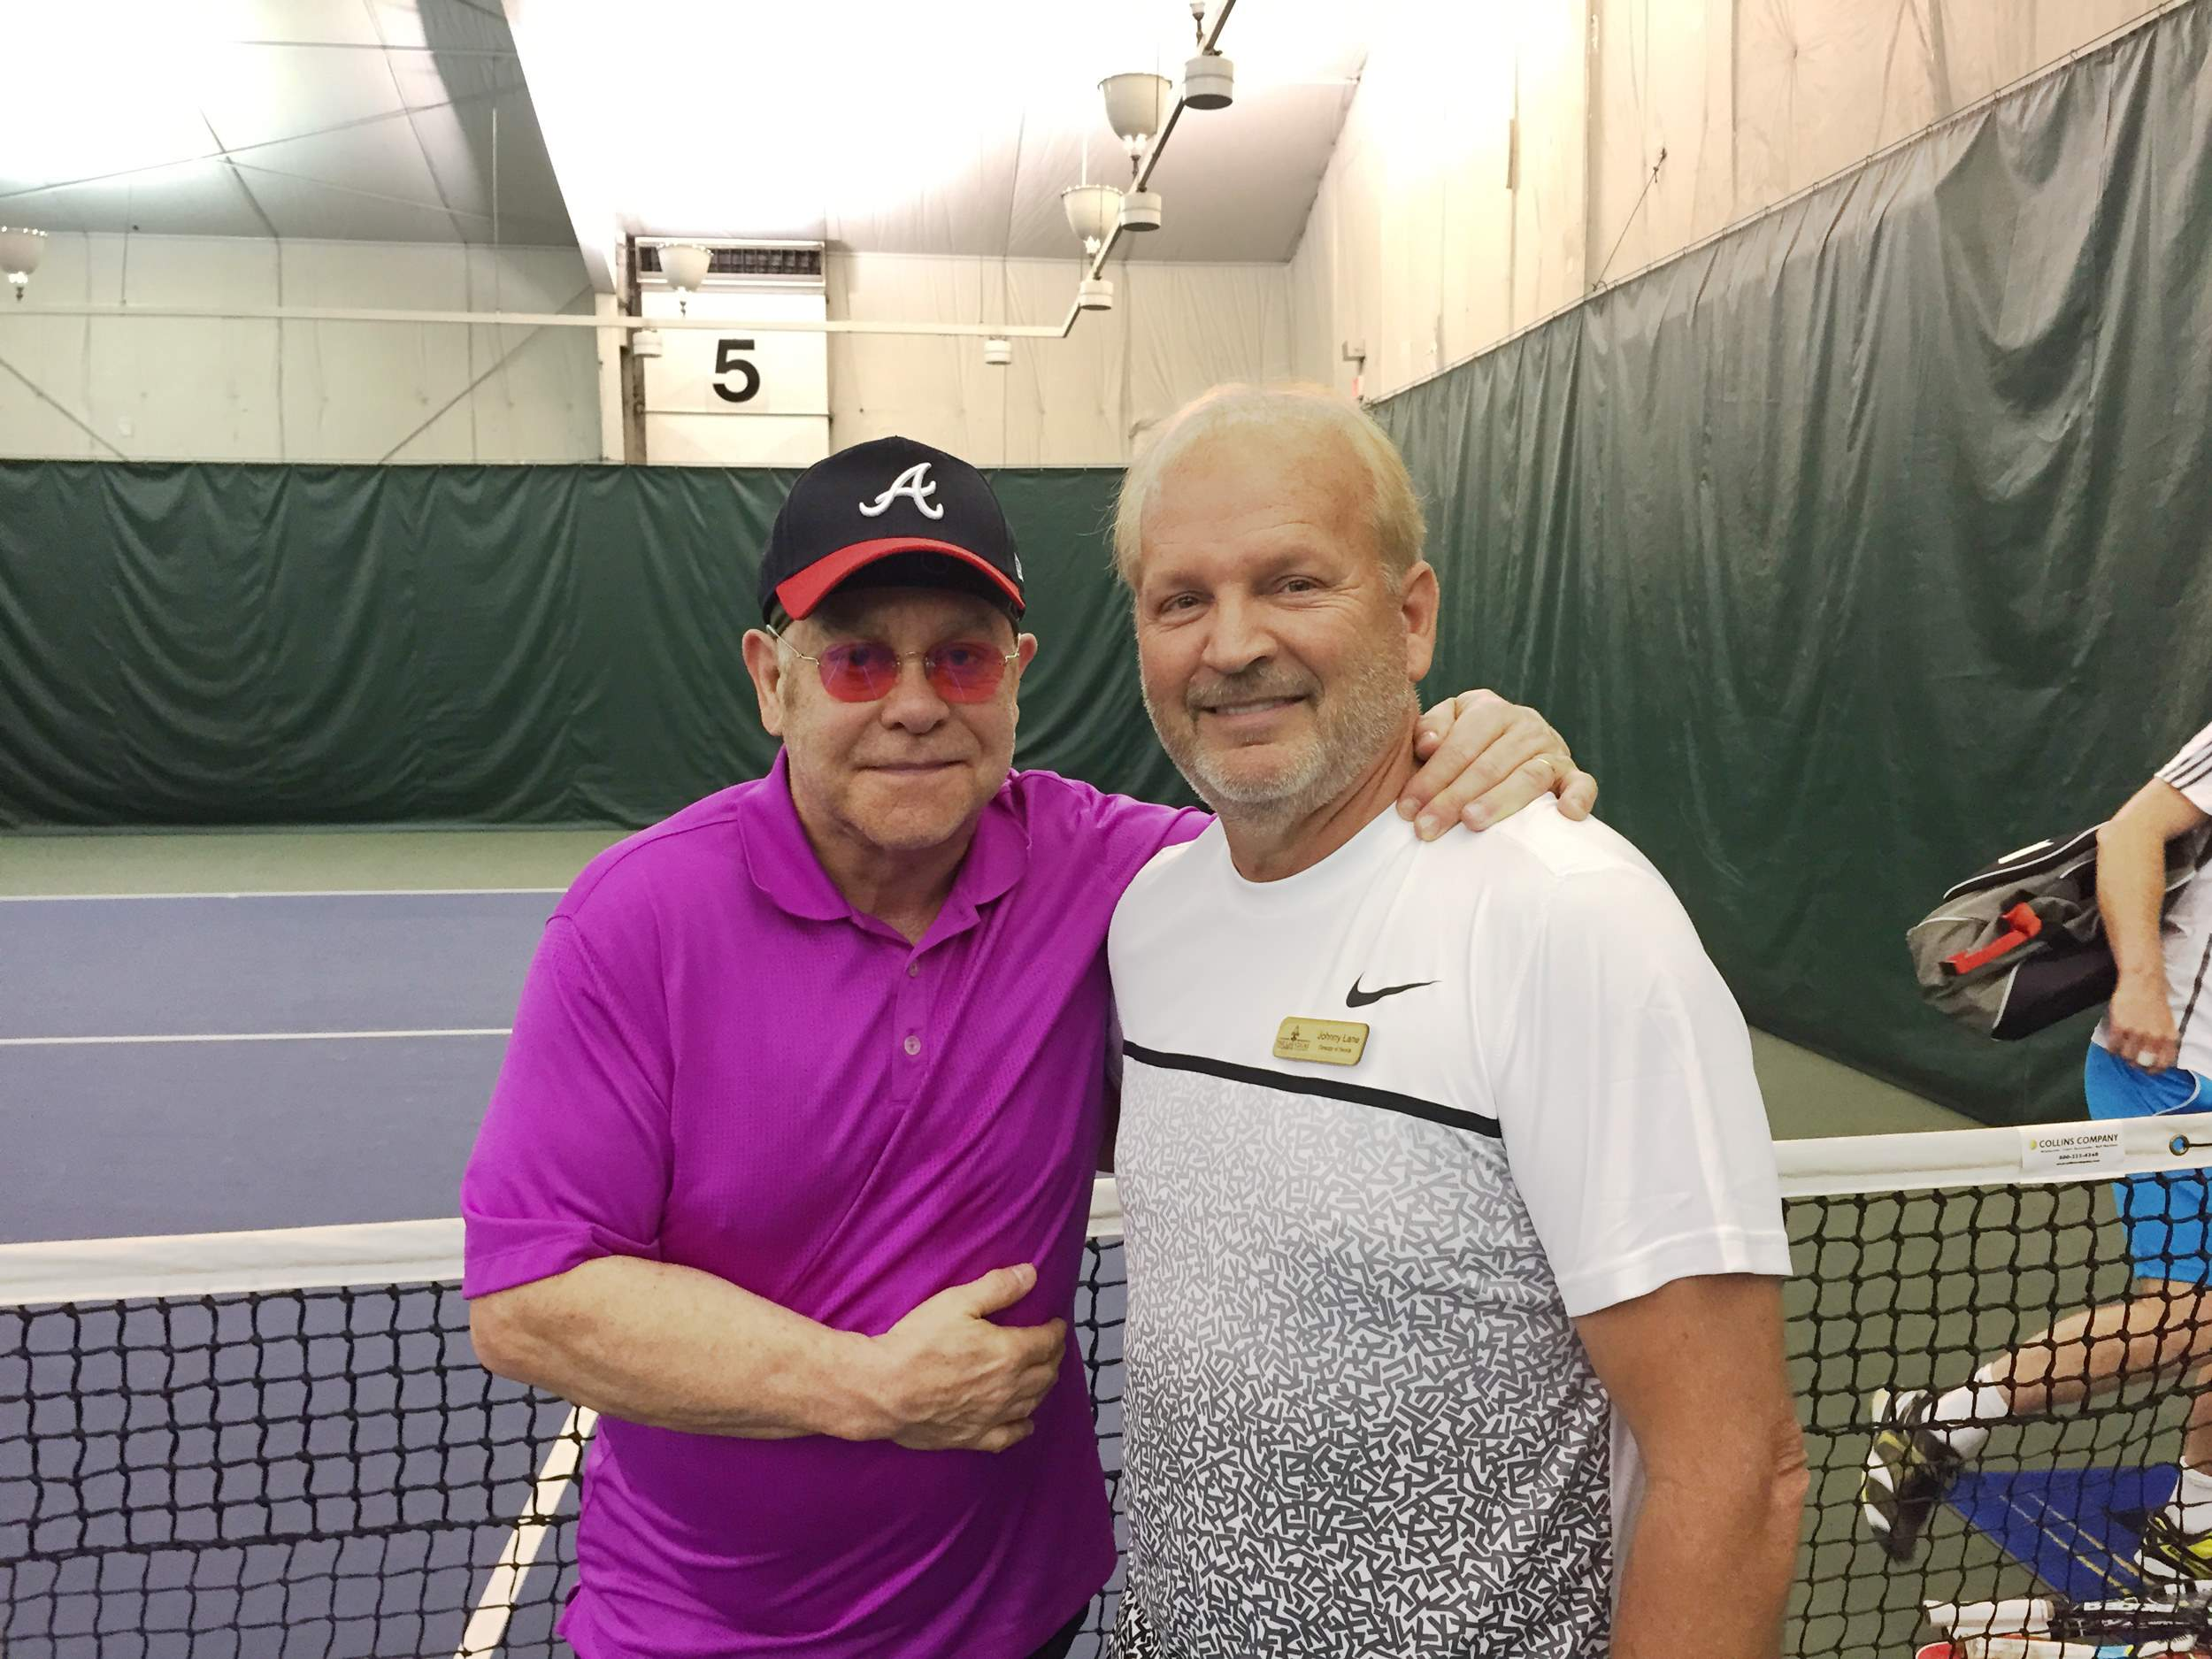 LasVegasCC-Tennis5-Elton-John-and-Johnny